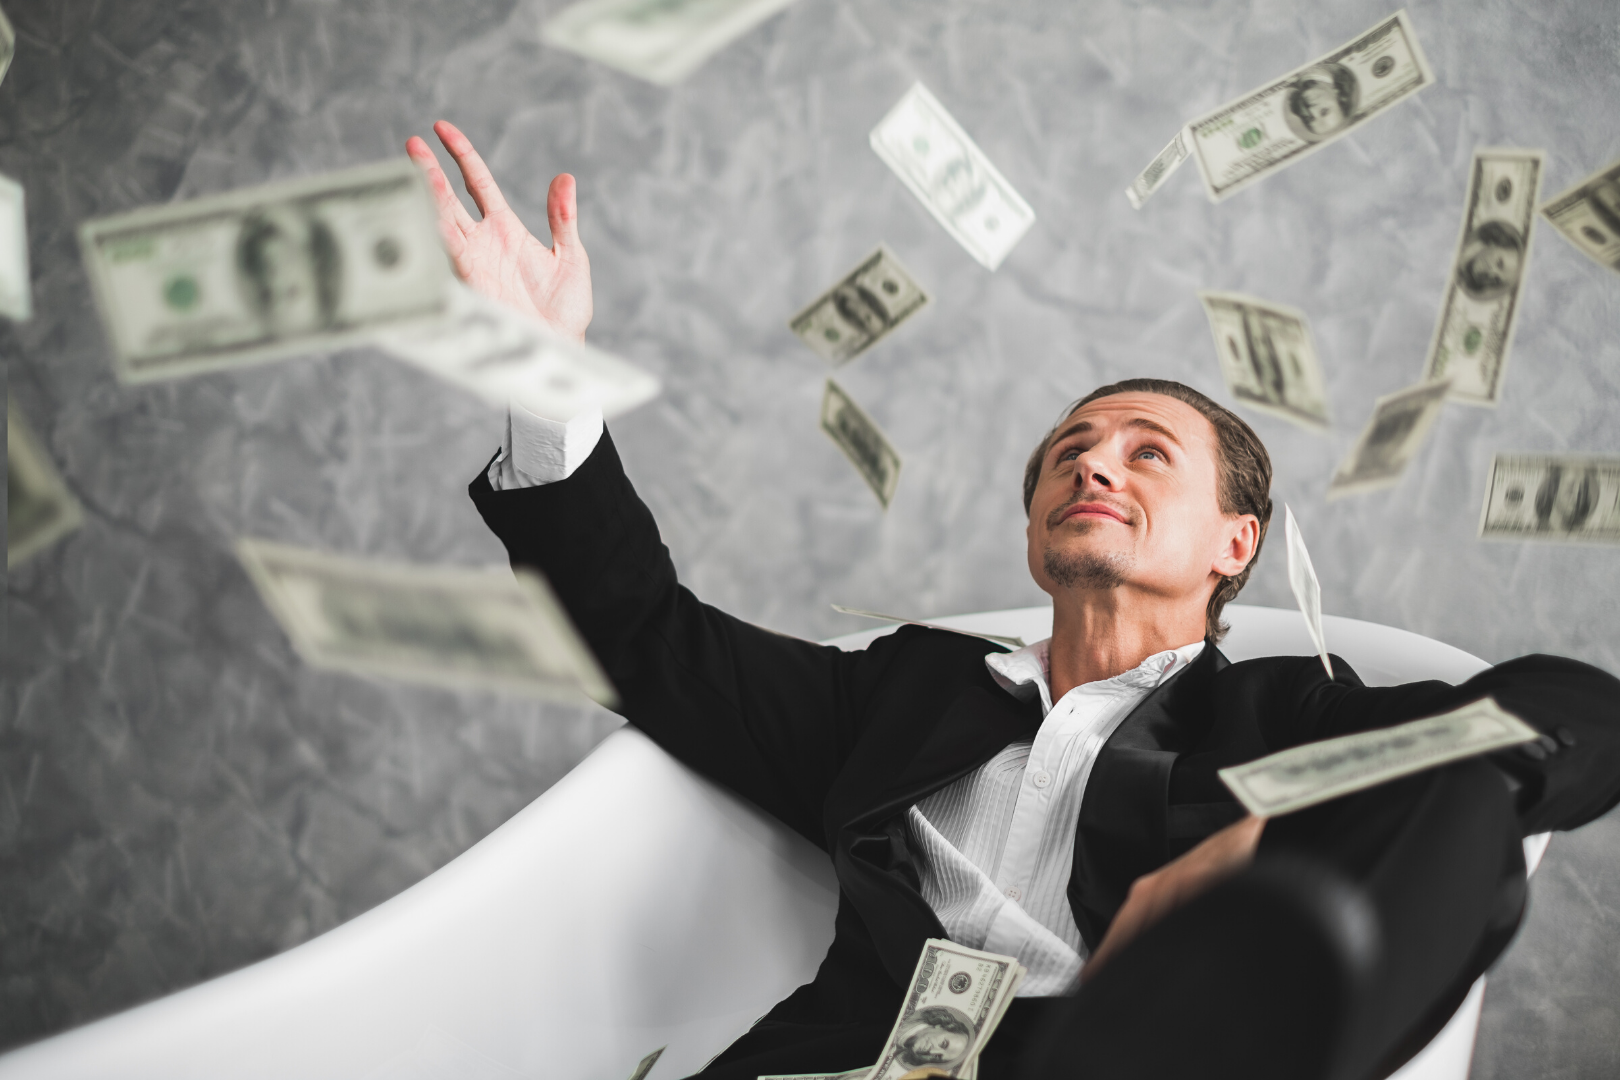 Millionaires Giving Away Money? It Makes More Sense Than You Think